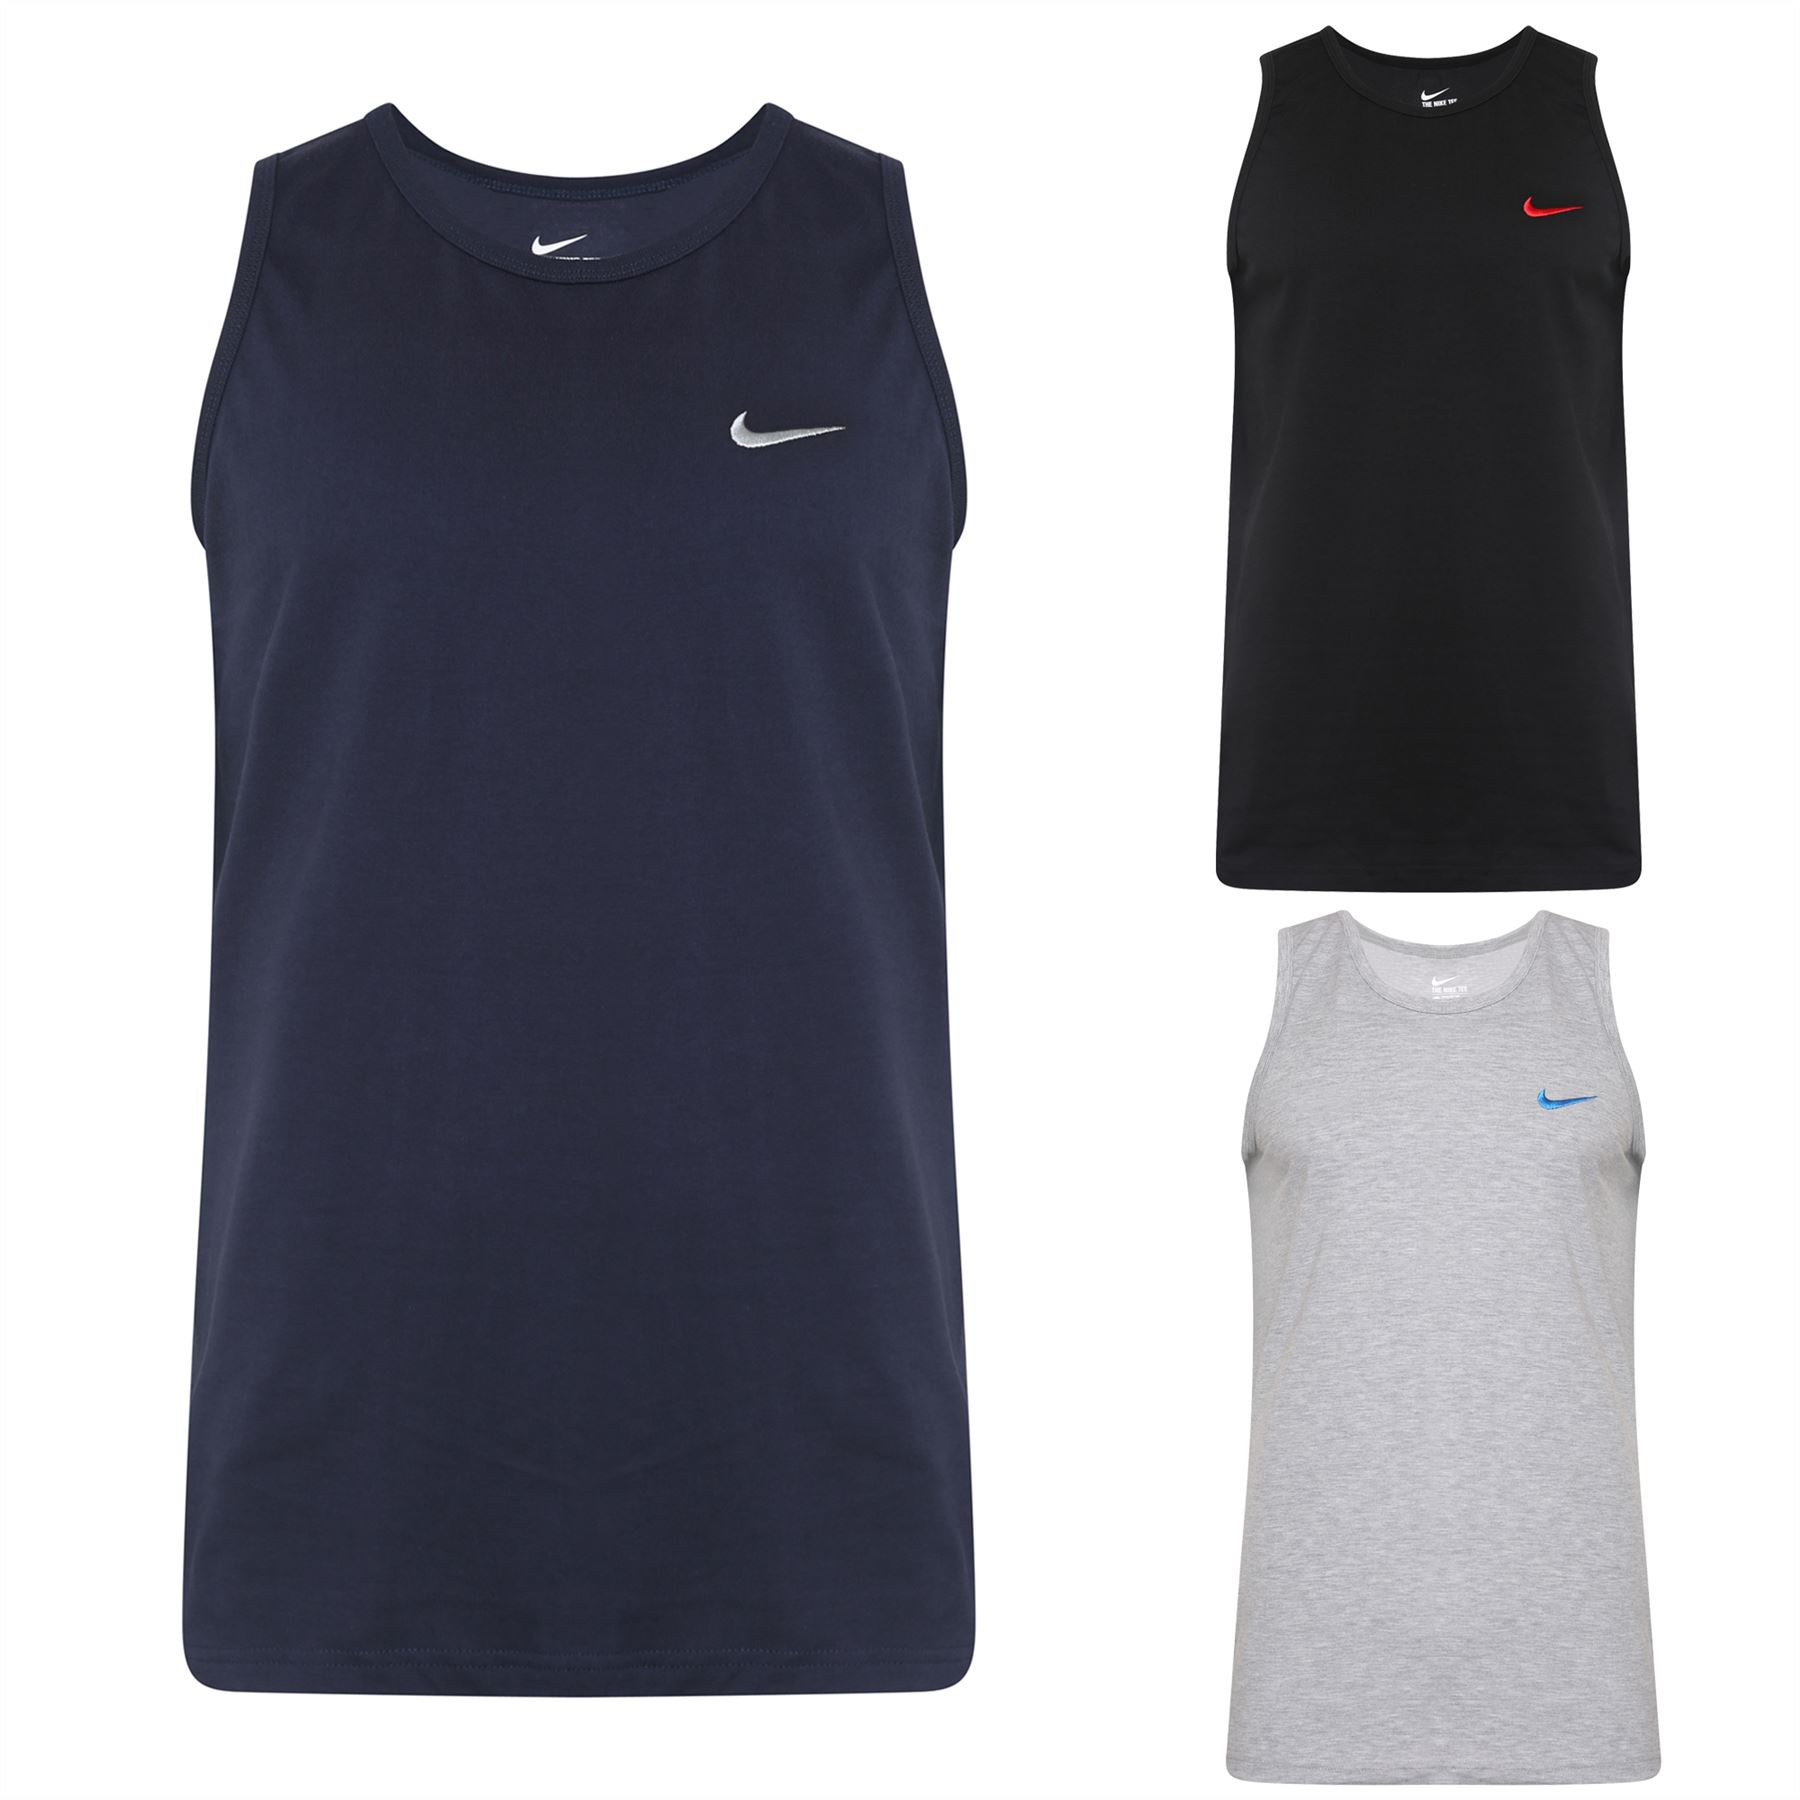 f4c1c36bfbd2 Details about New Men s Nike Logo Vest Tank Top Sleeveless T-Shirt Singlet  - Black Navy Grey